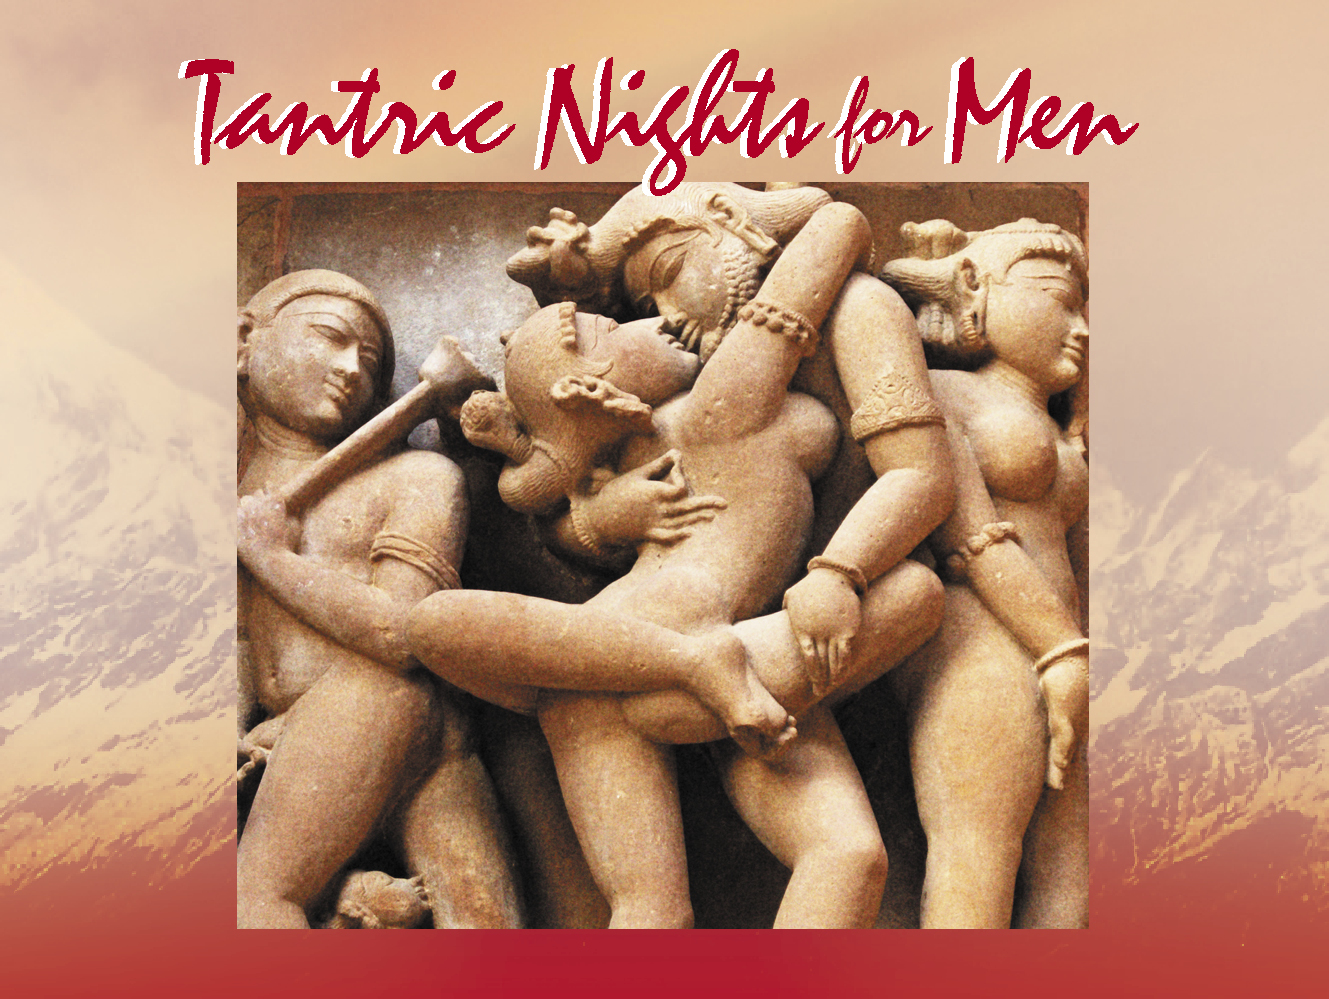 Tantric Nights for Men flower essence